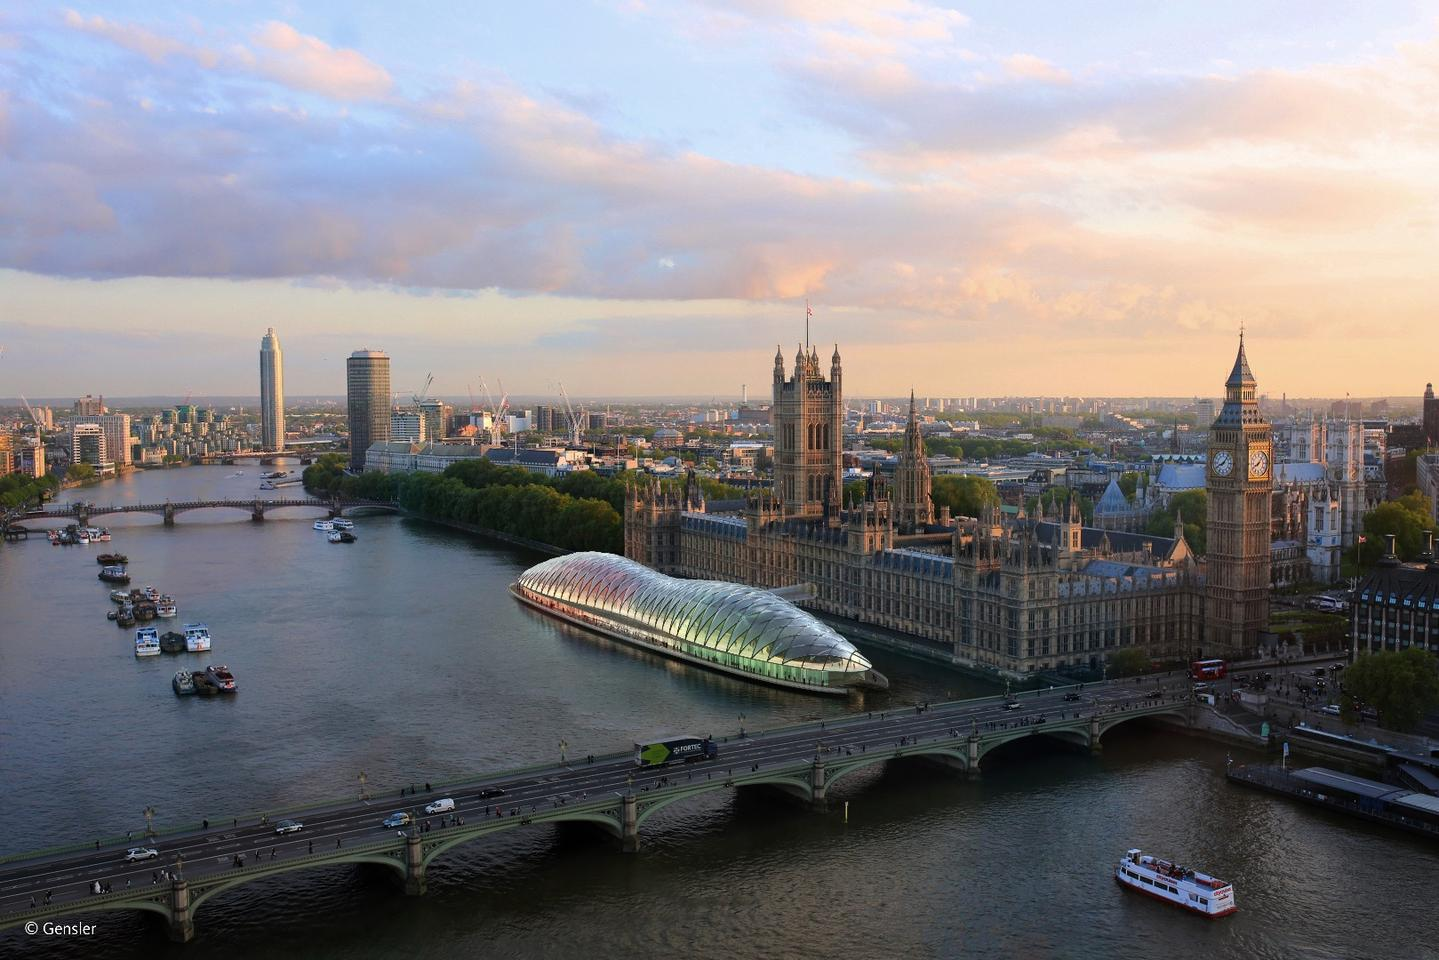 According to Gensler, its striking glazed design draws inspiration from the magnificent hammer-beam timber roof of Westminster Hall